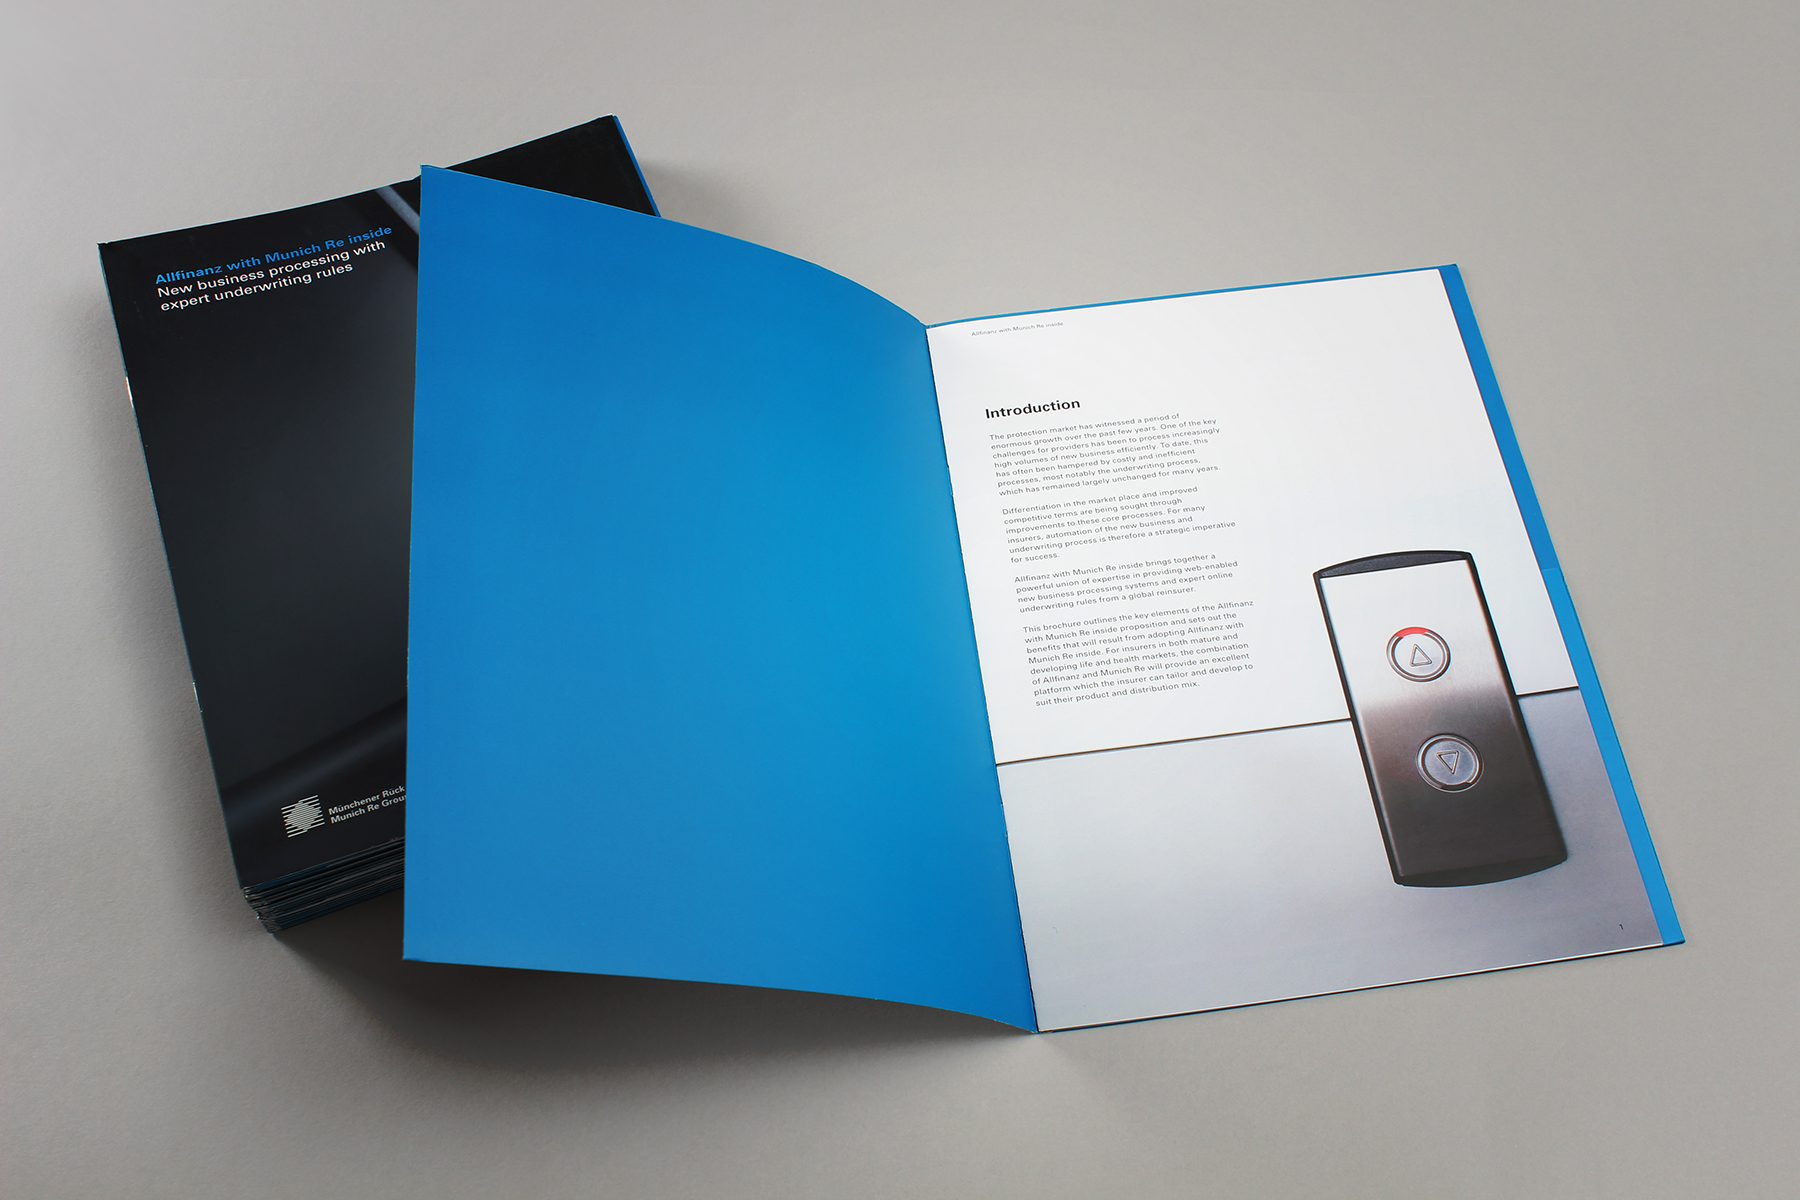 We used images with light backgrounds in order to retain impact yet allow for space for copy,